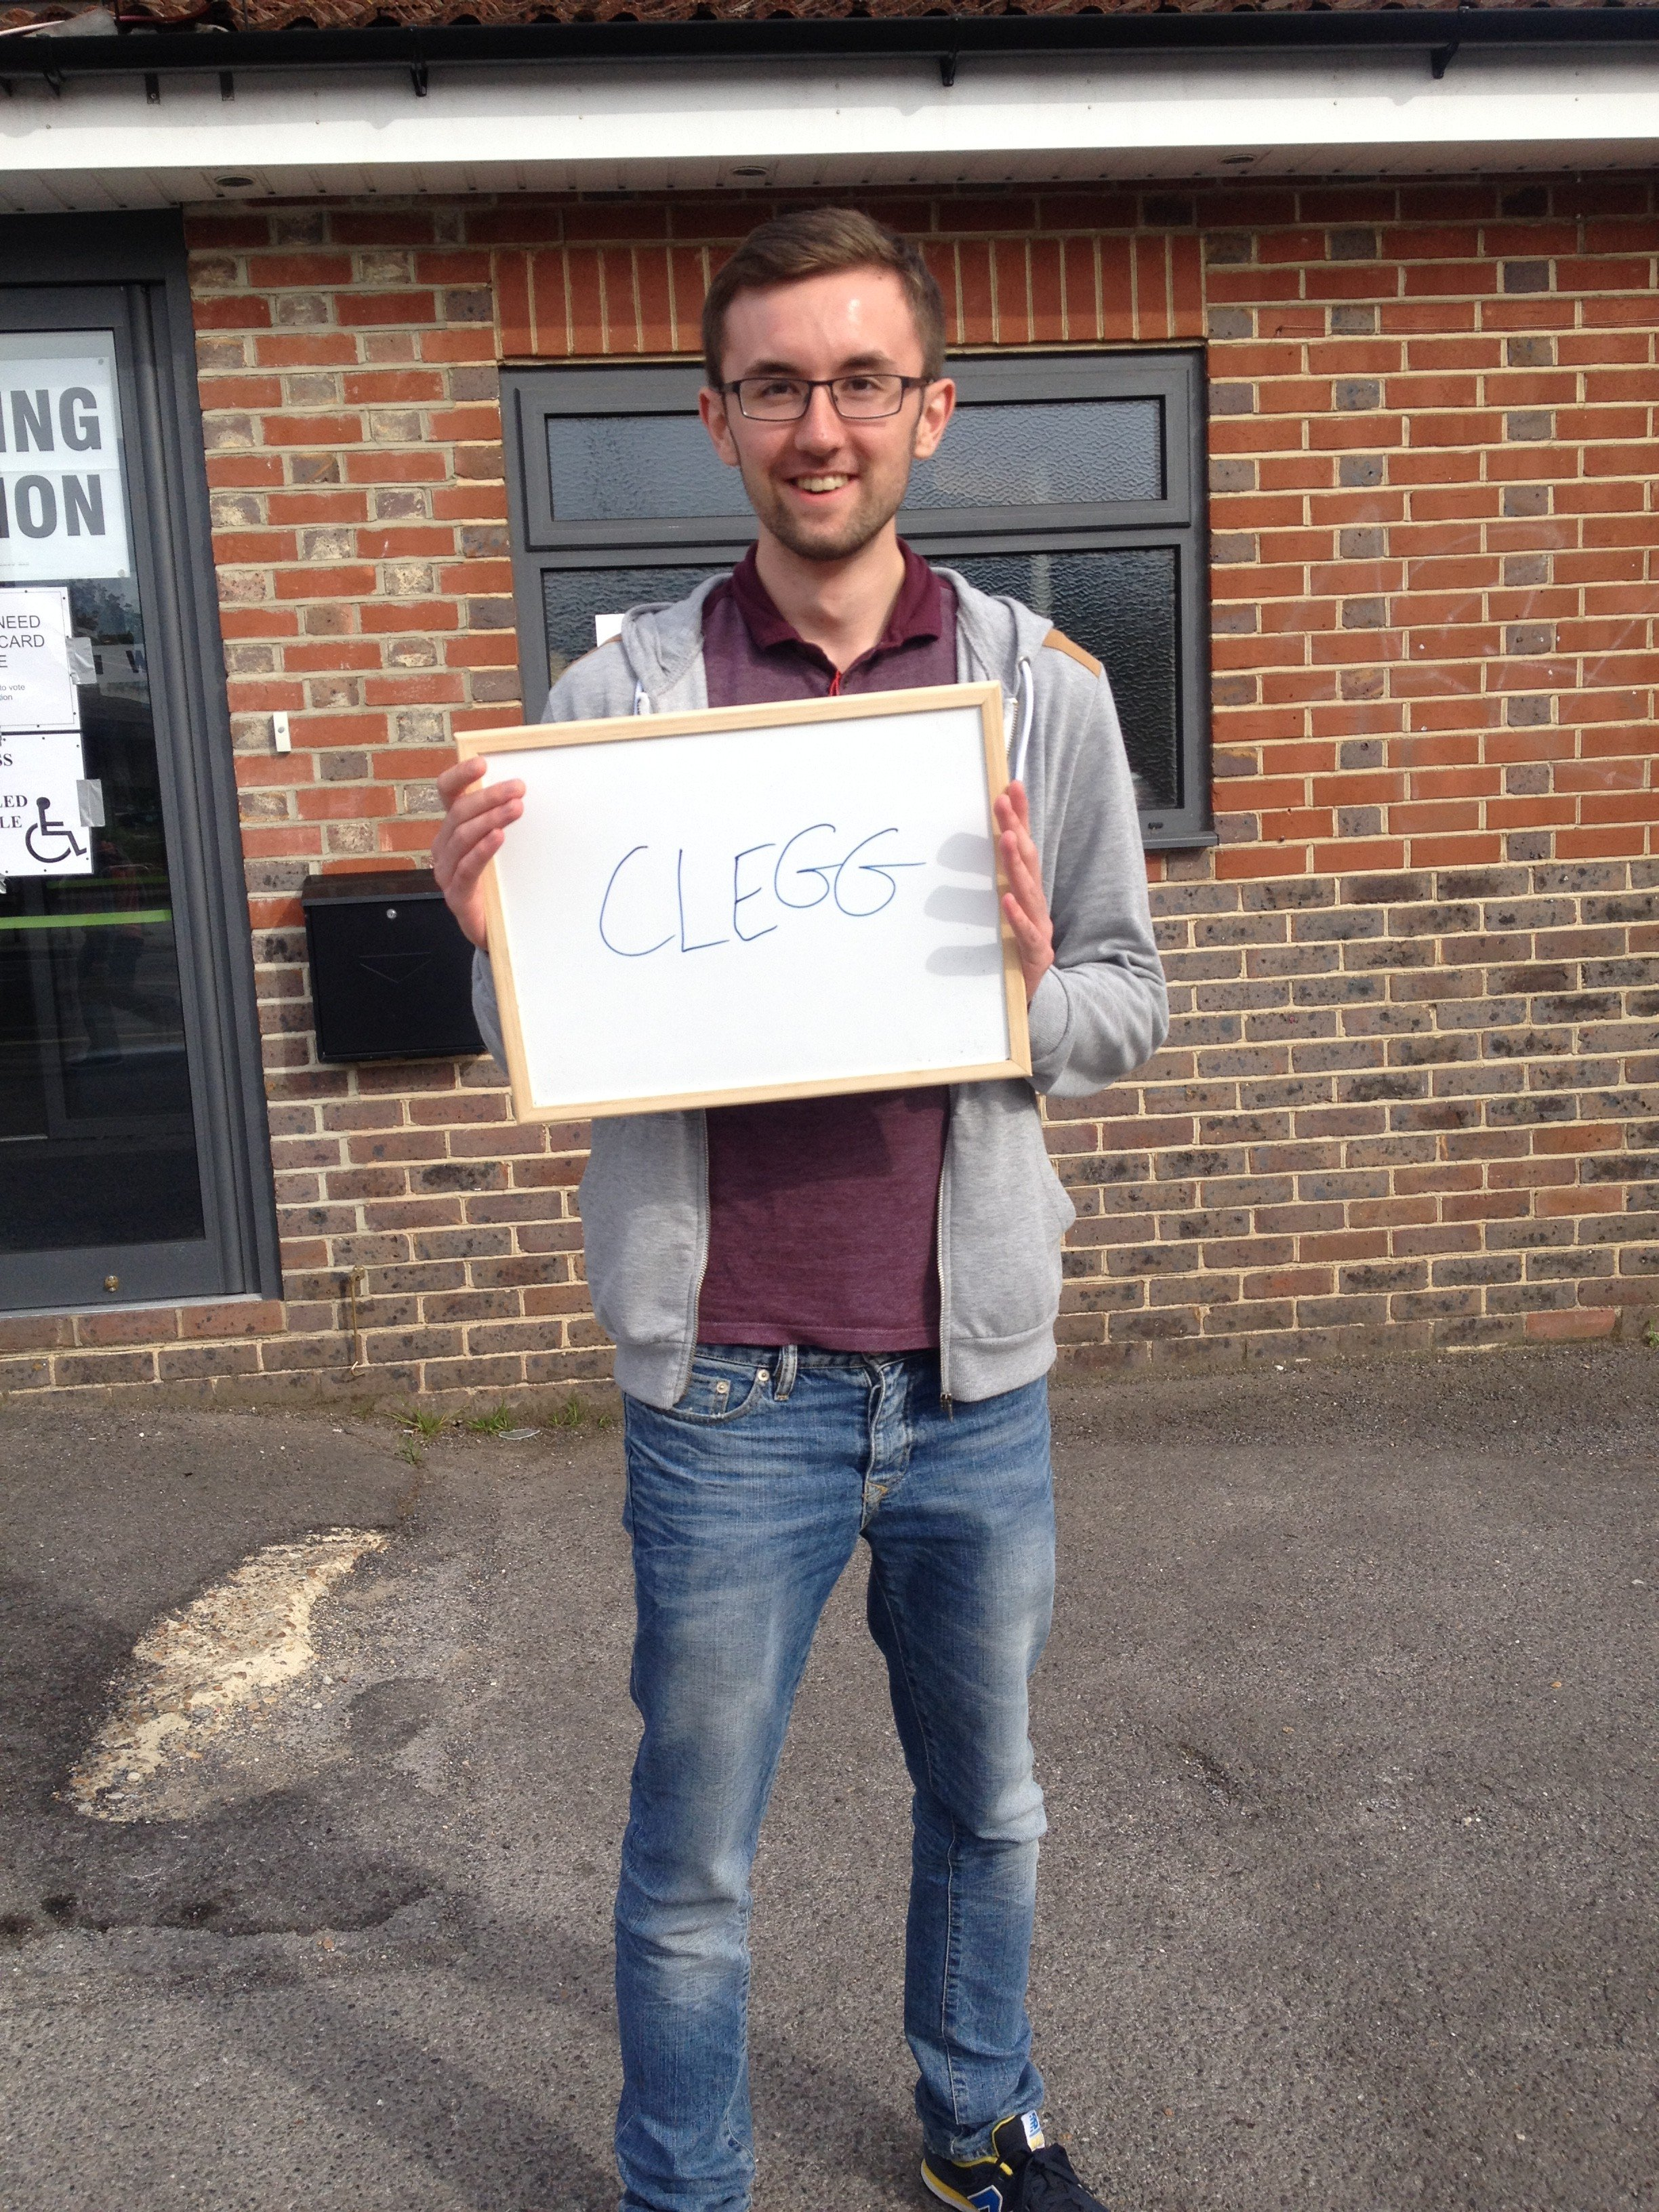 Tom, 3rd year economics student, decided that Clegg was definitely the one to back